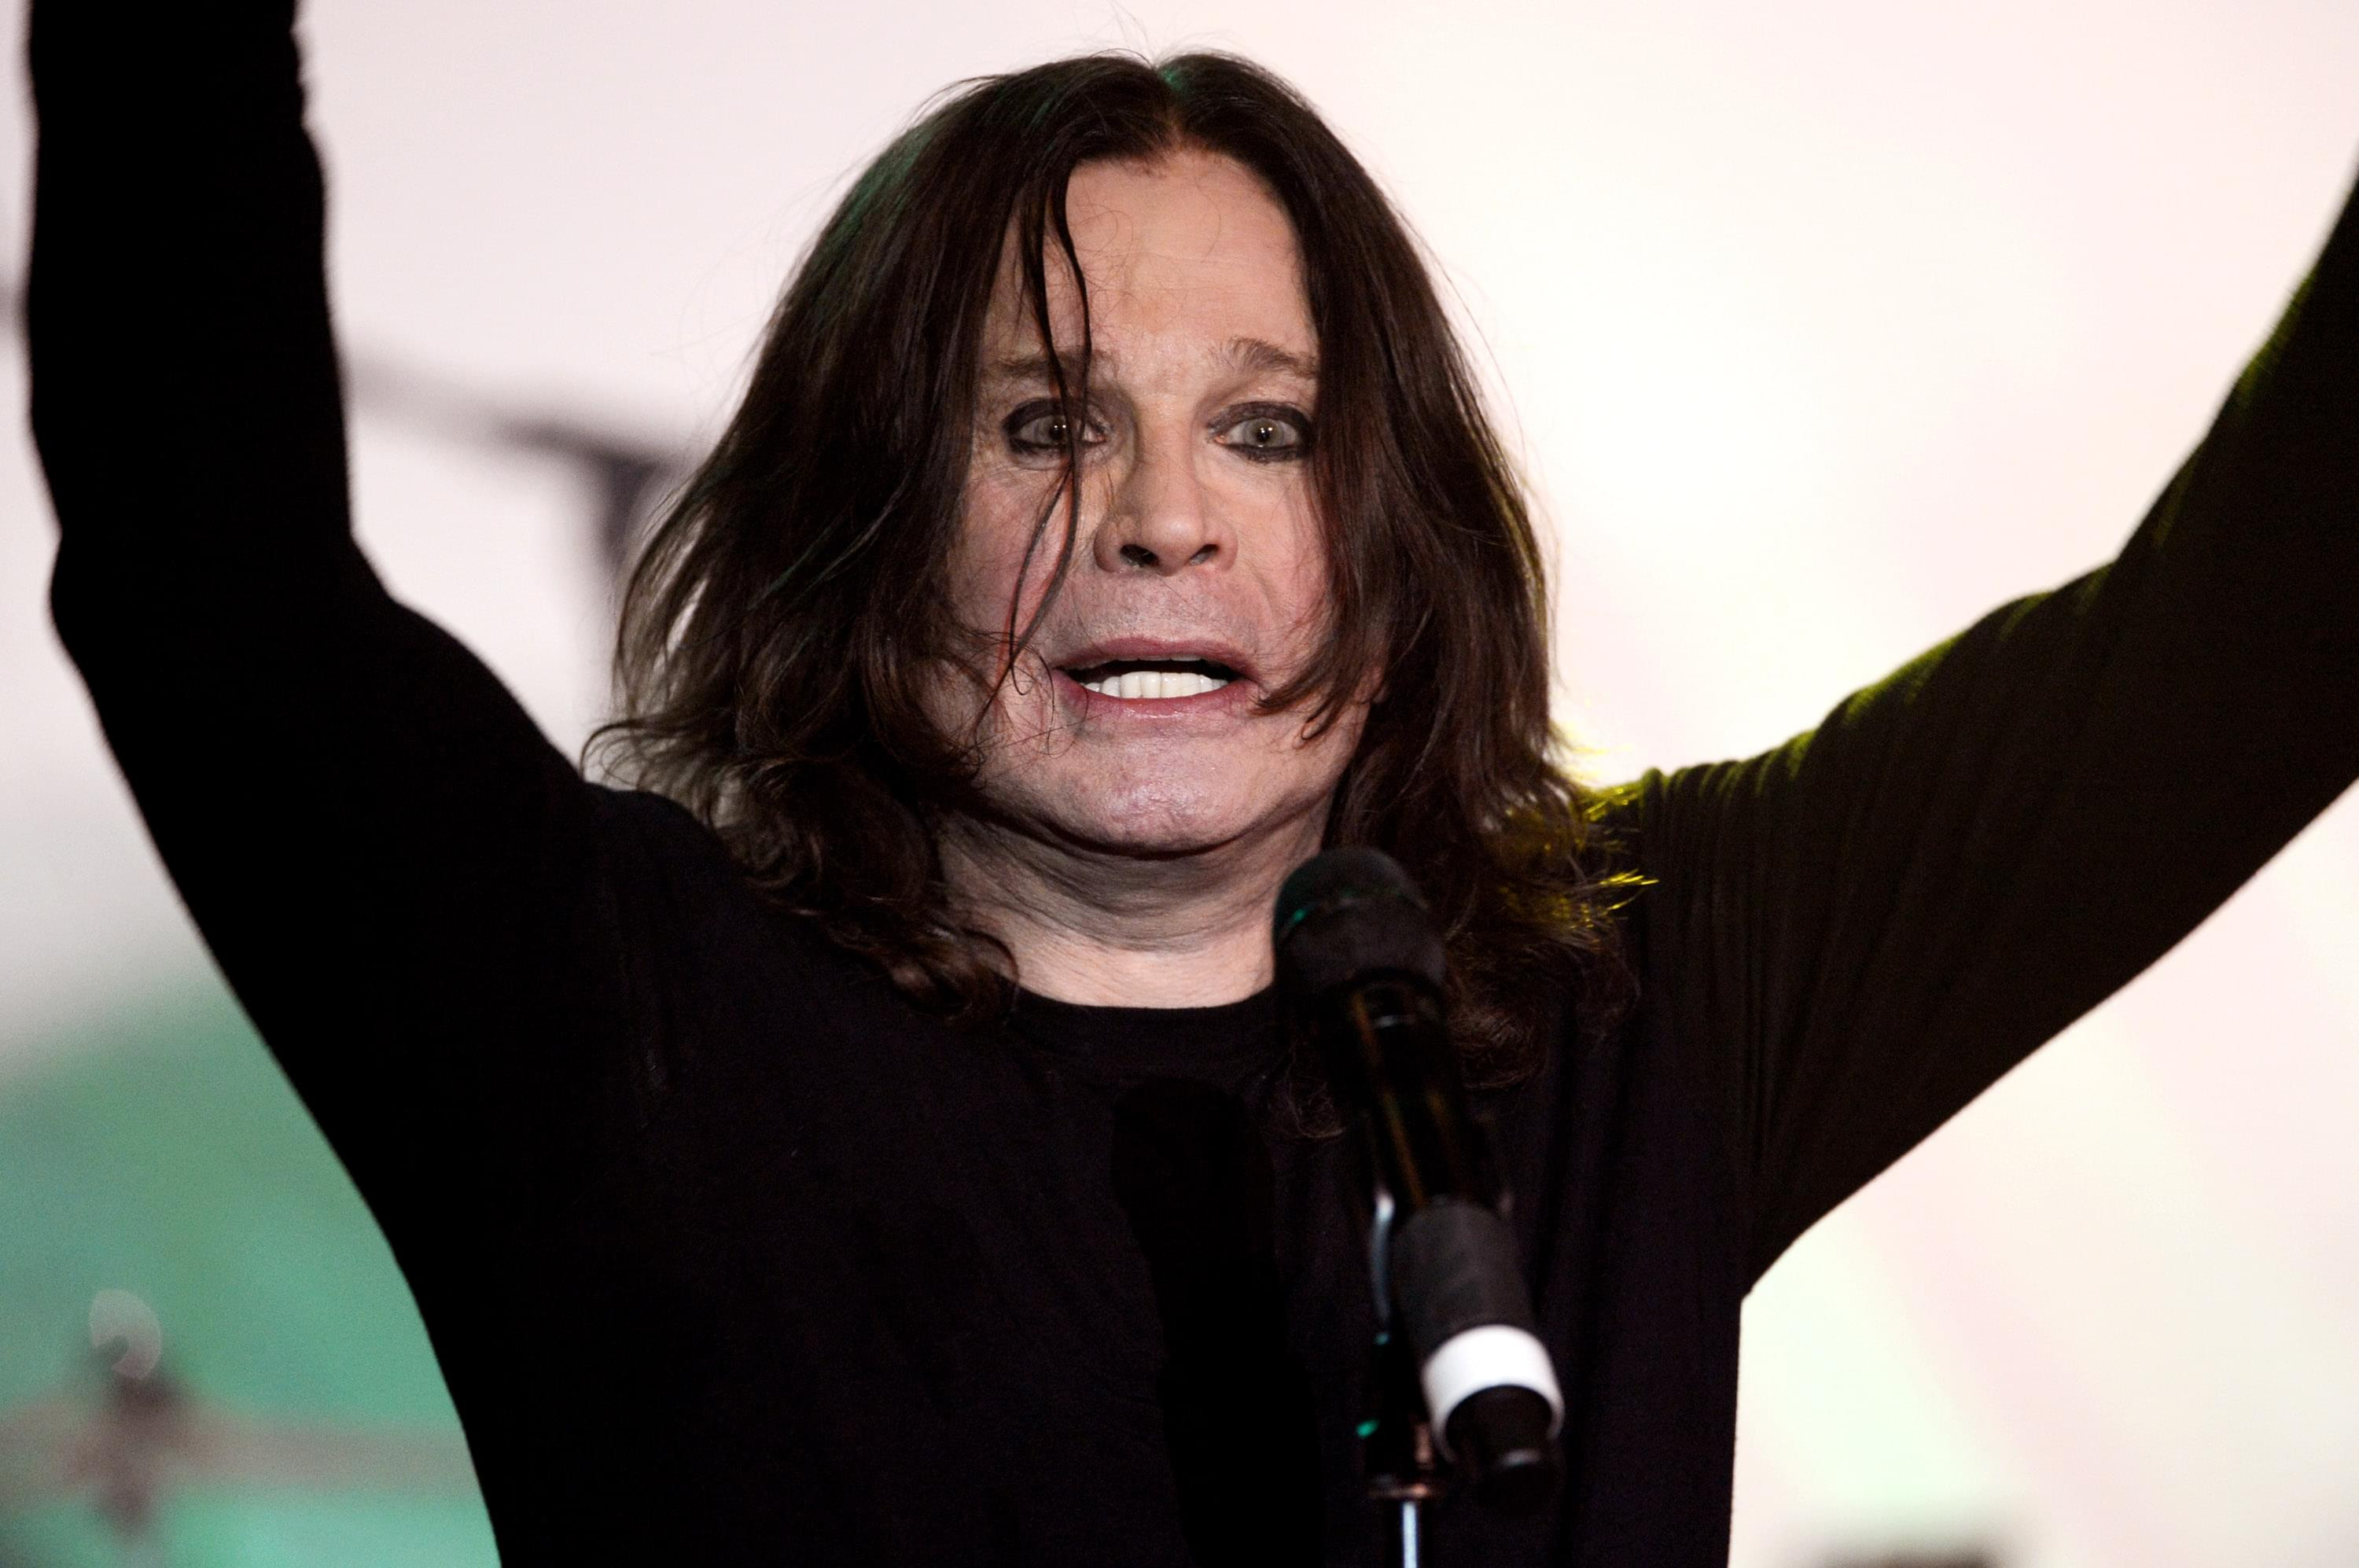 Ozzy Osbourne launches sweepstakes tied to new album